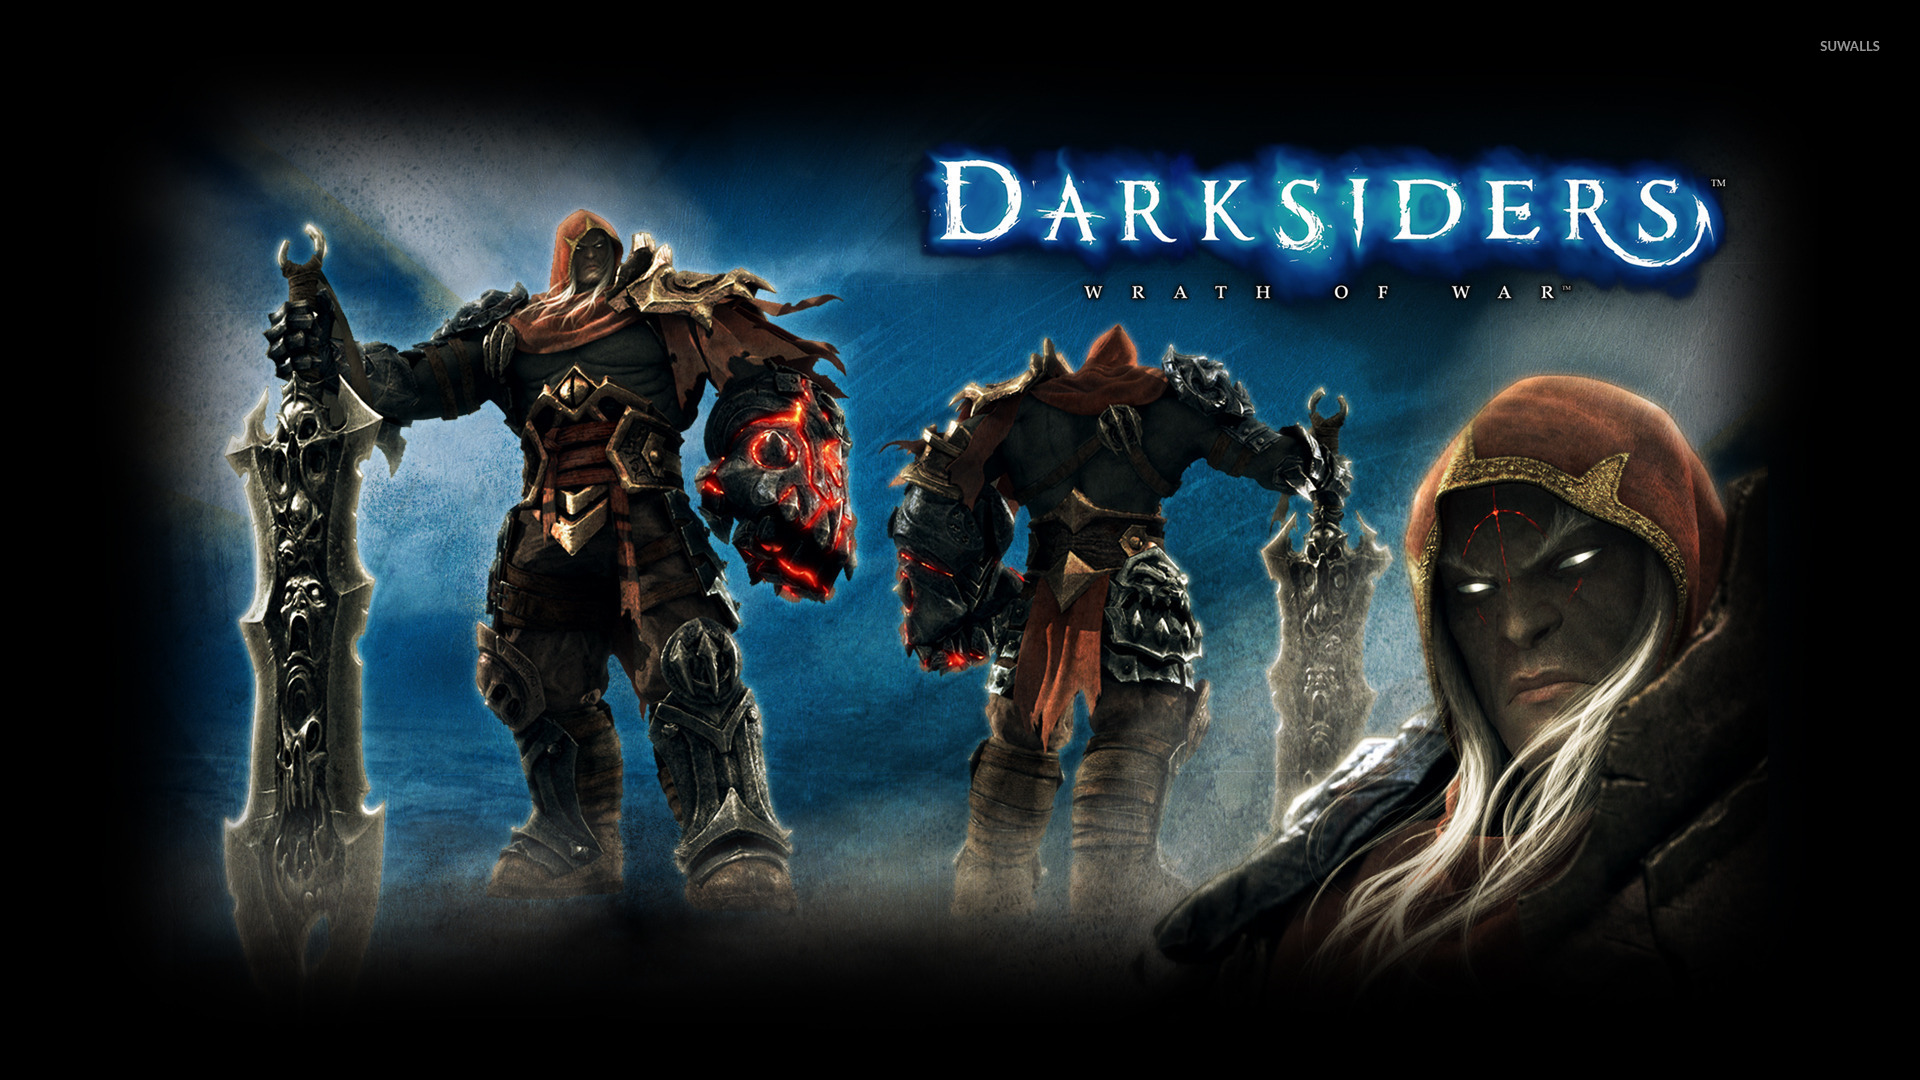 Darksiders War Wallpaper By: Darksiders: Wrath Of War [2] Wallpaper